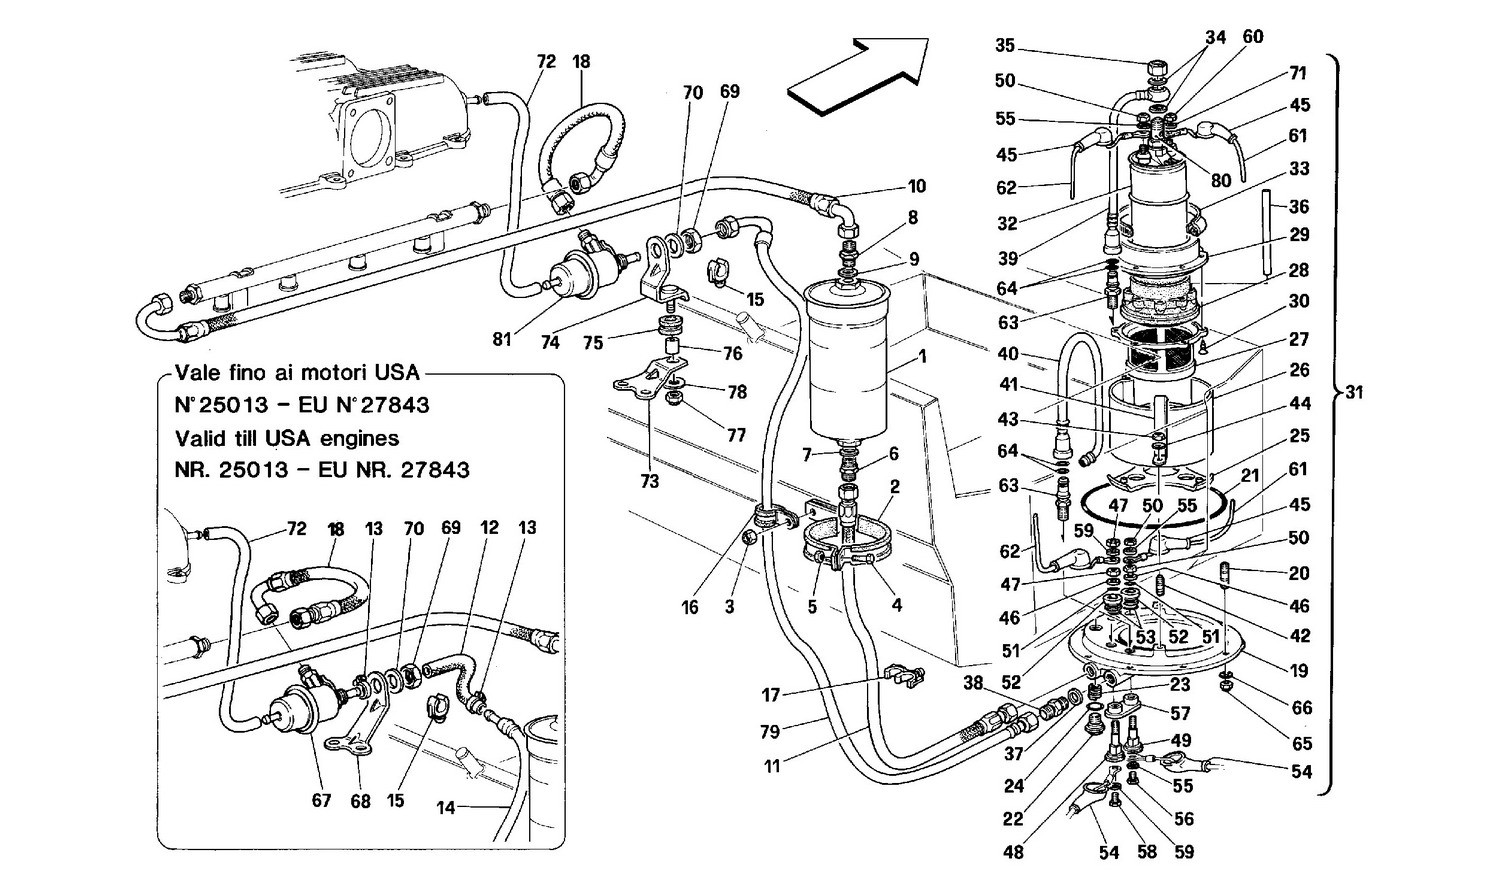 Fuel pump and pipes